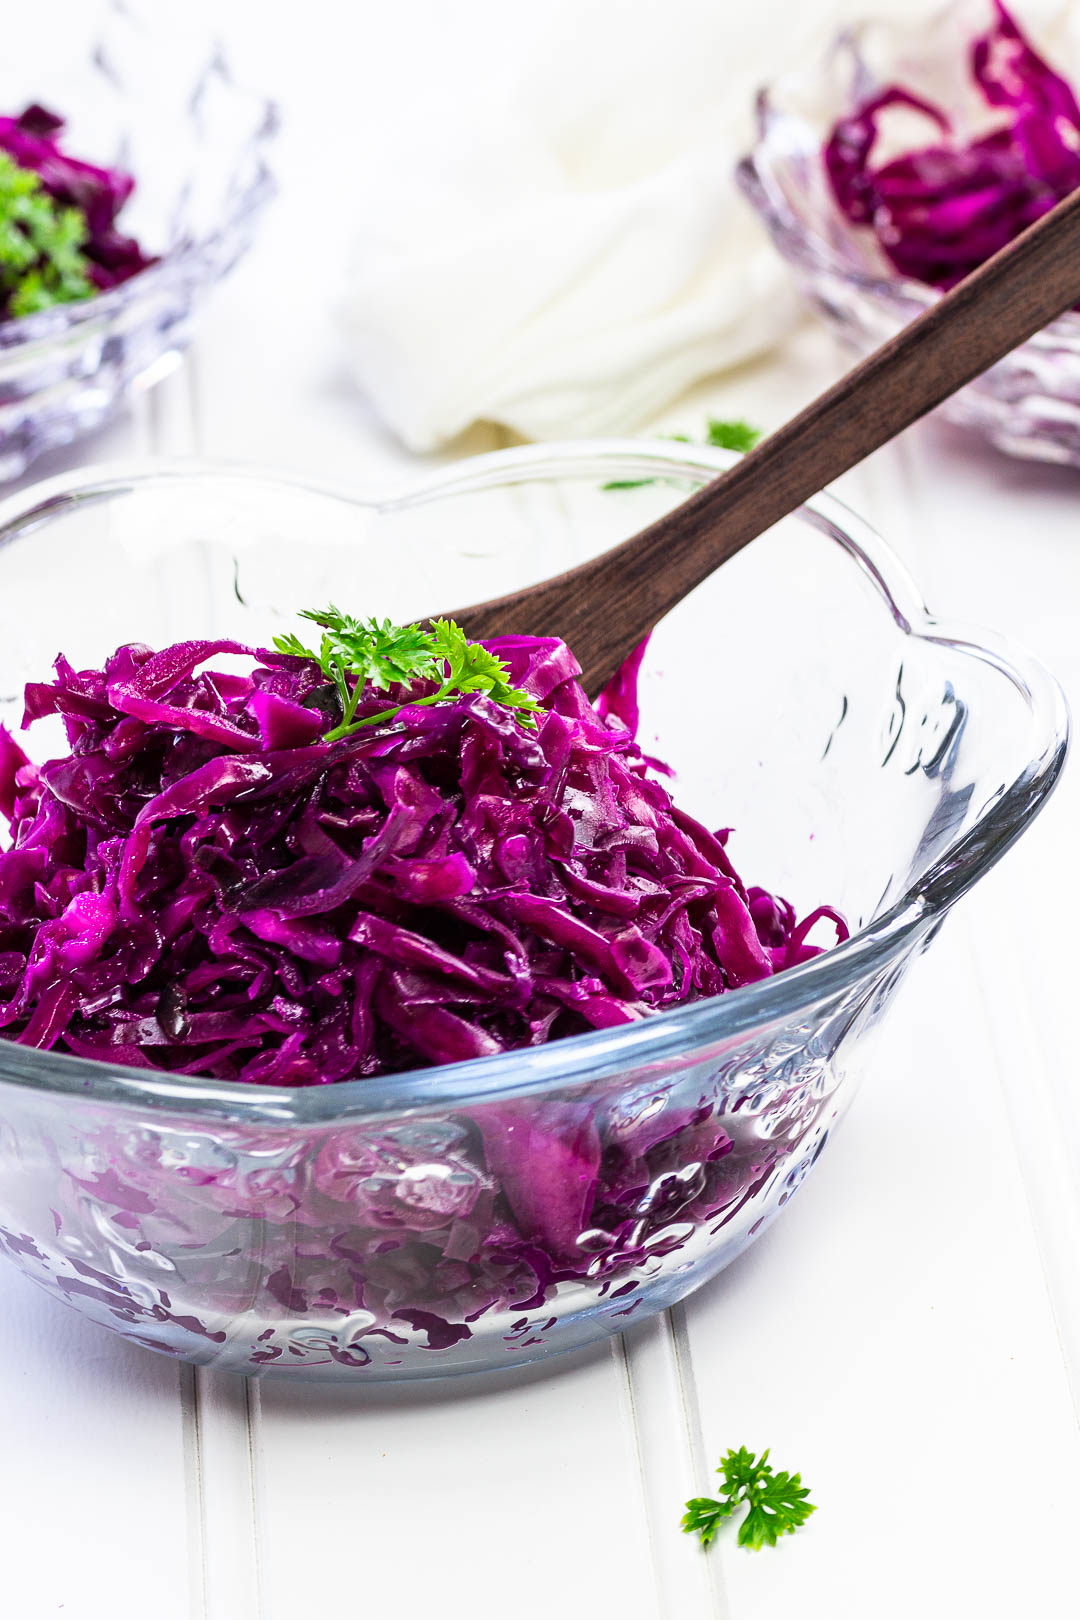 vegan red, purple coleslaw with red cabbage (wfpb)